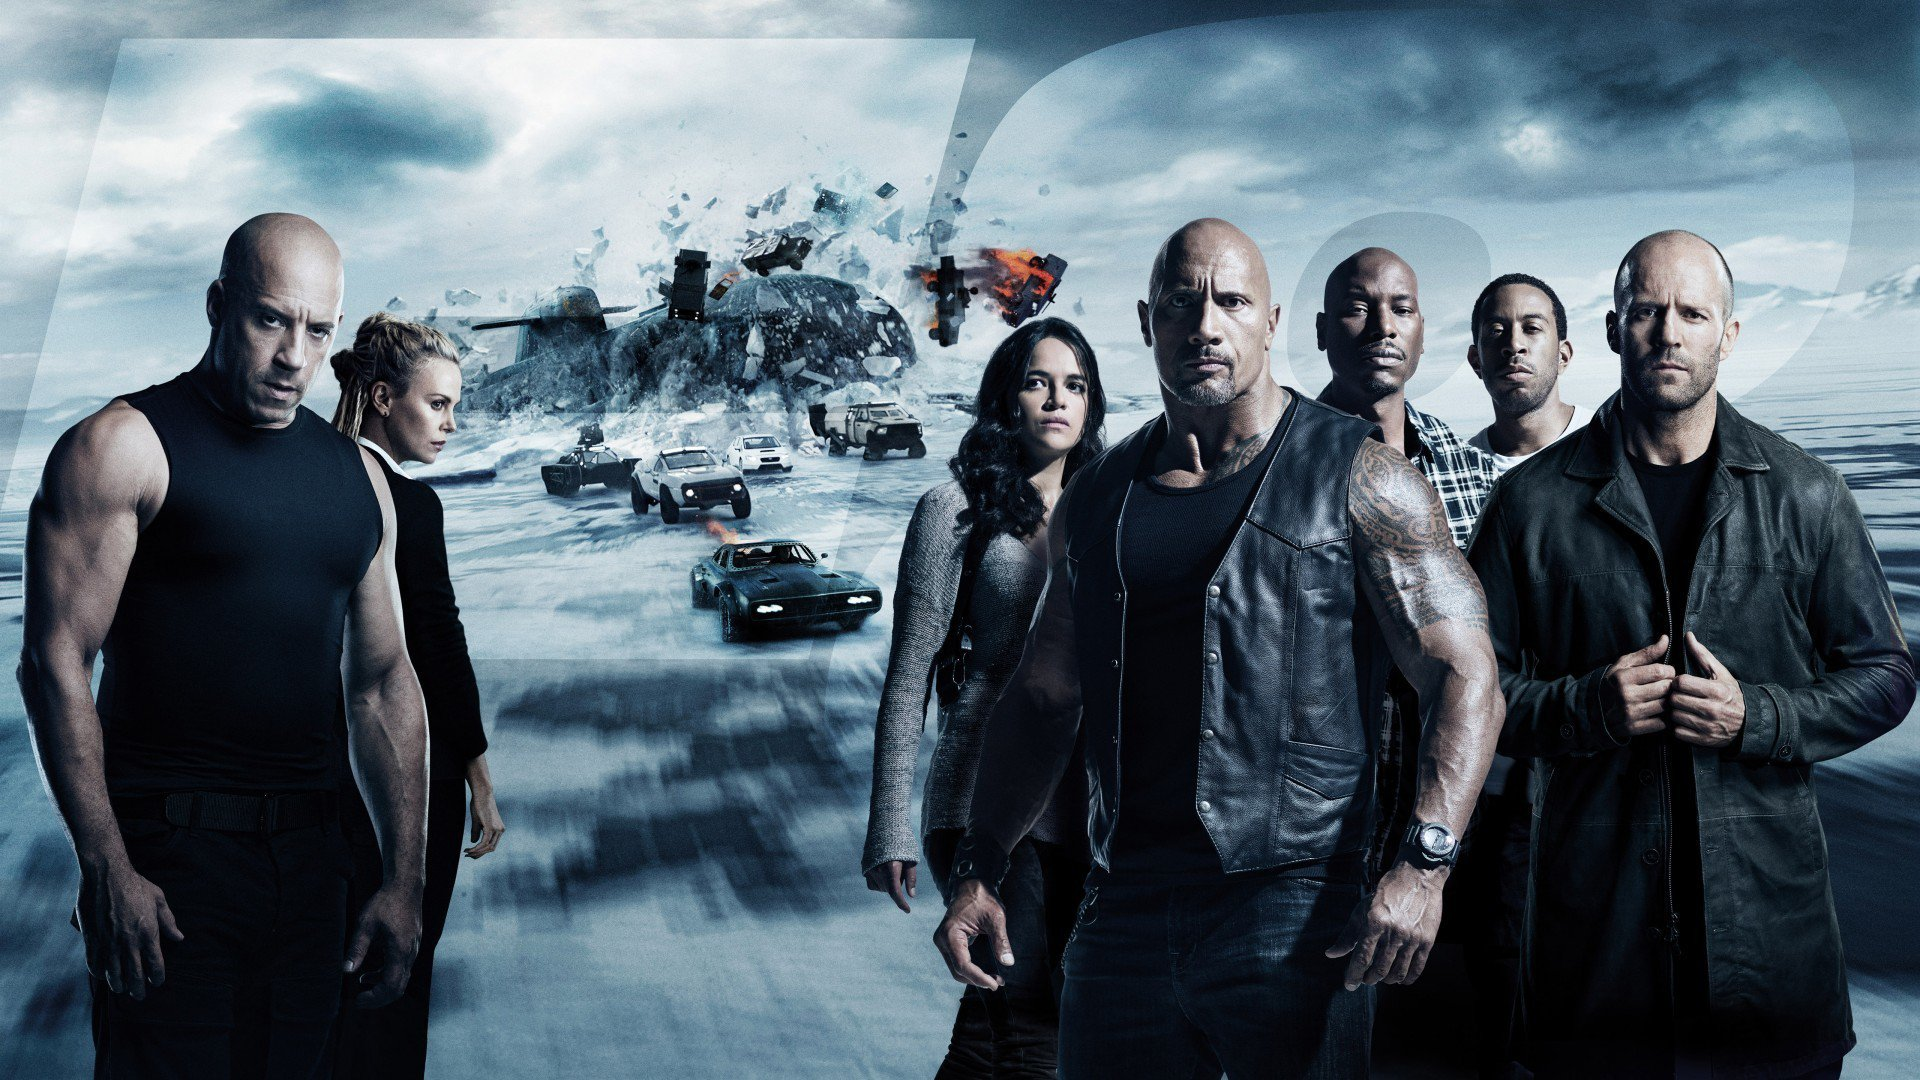 Watch The Fate of the Furious Full Movies Online Free HD http://jemy.bigmovies10.com/…/…/the-fate-of-the-furious.html Genre : Action, Crime, Drama, Thriller Stars : Vin Diesel, Dwayne Johnson, Jason Statham, Kurt Russell, Michelle Rodriguez, Charlize Theron Release : 2017-04-12 Runtime : 136 min. Production : Universal Pictures Movie Synopsis: When a mysterious woman seduces Dom into the world of crime and a betrayal of those closest to him, the crew face trials that will test them as never before.